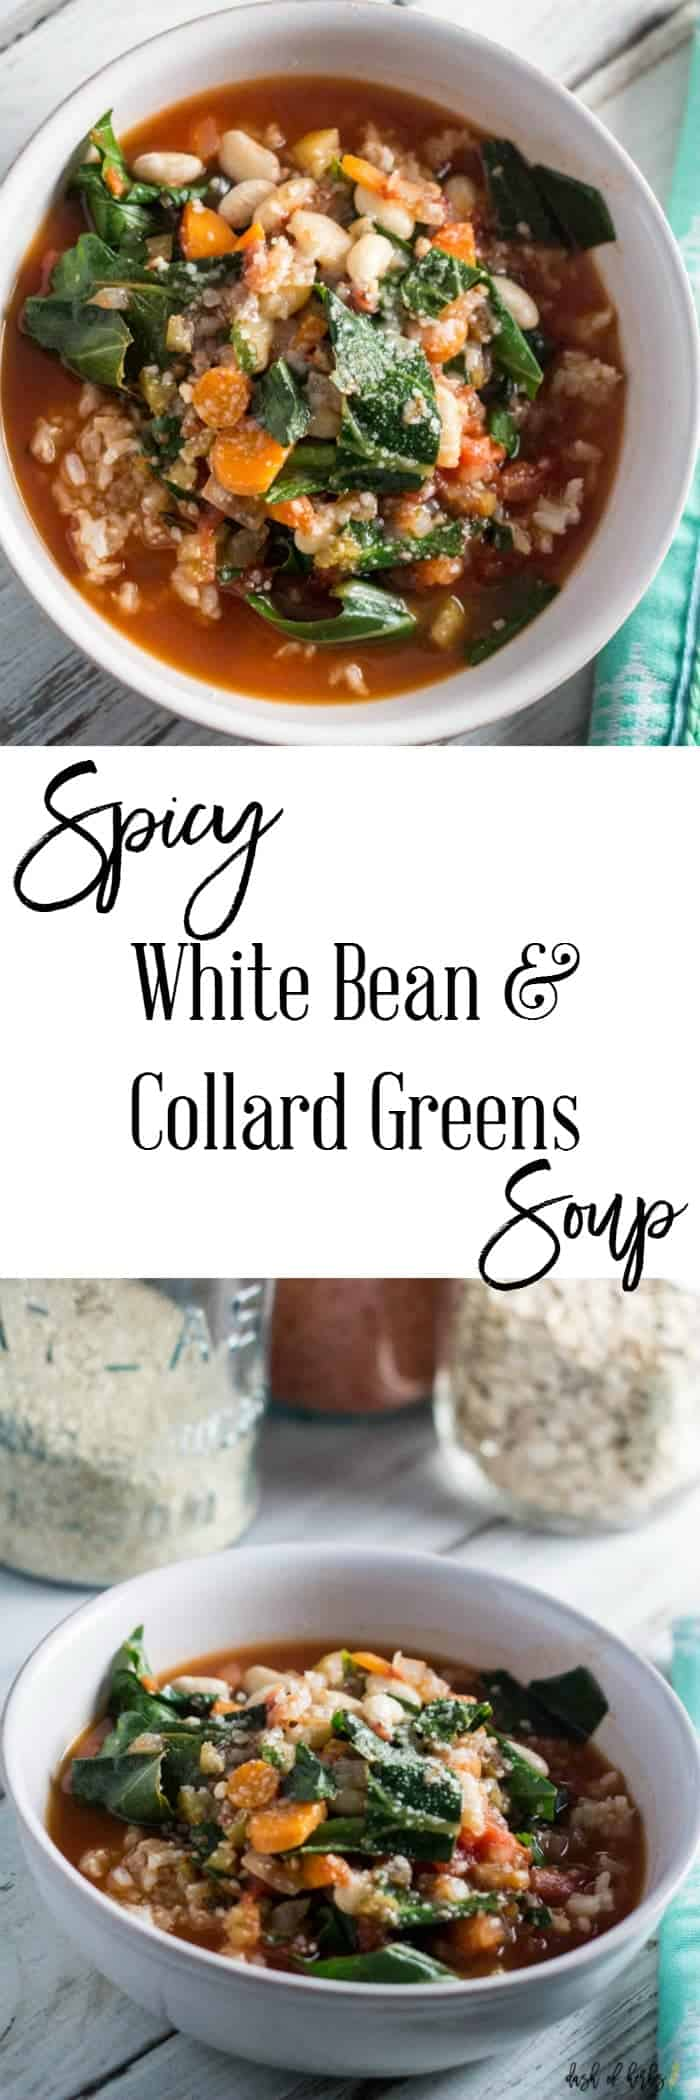 Spicy White Bean and Collard Greens Soups